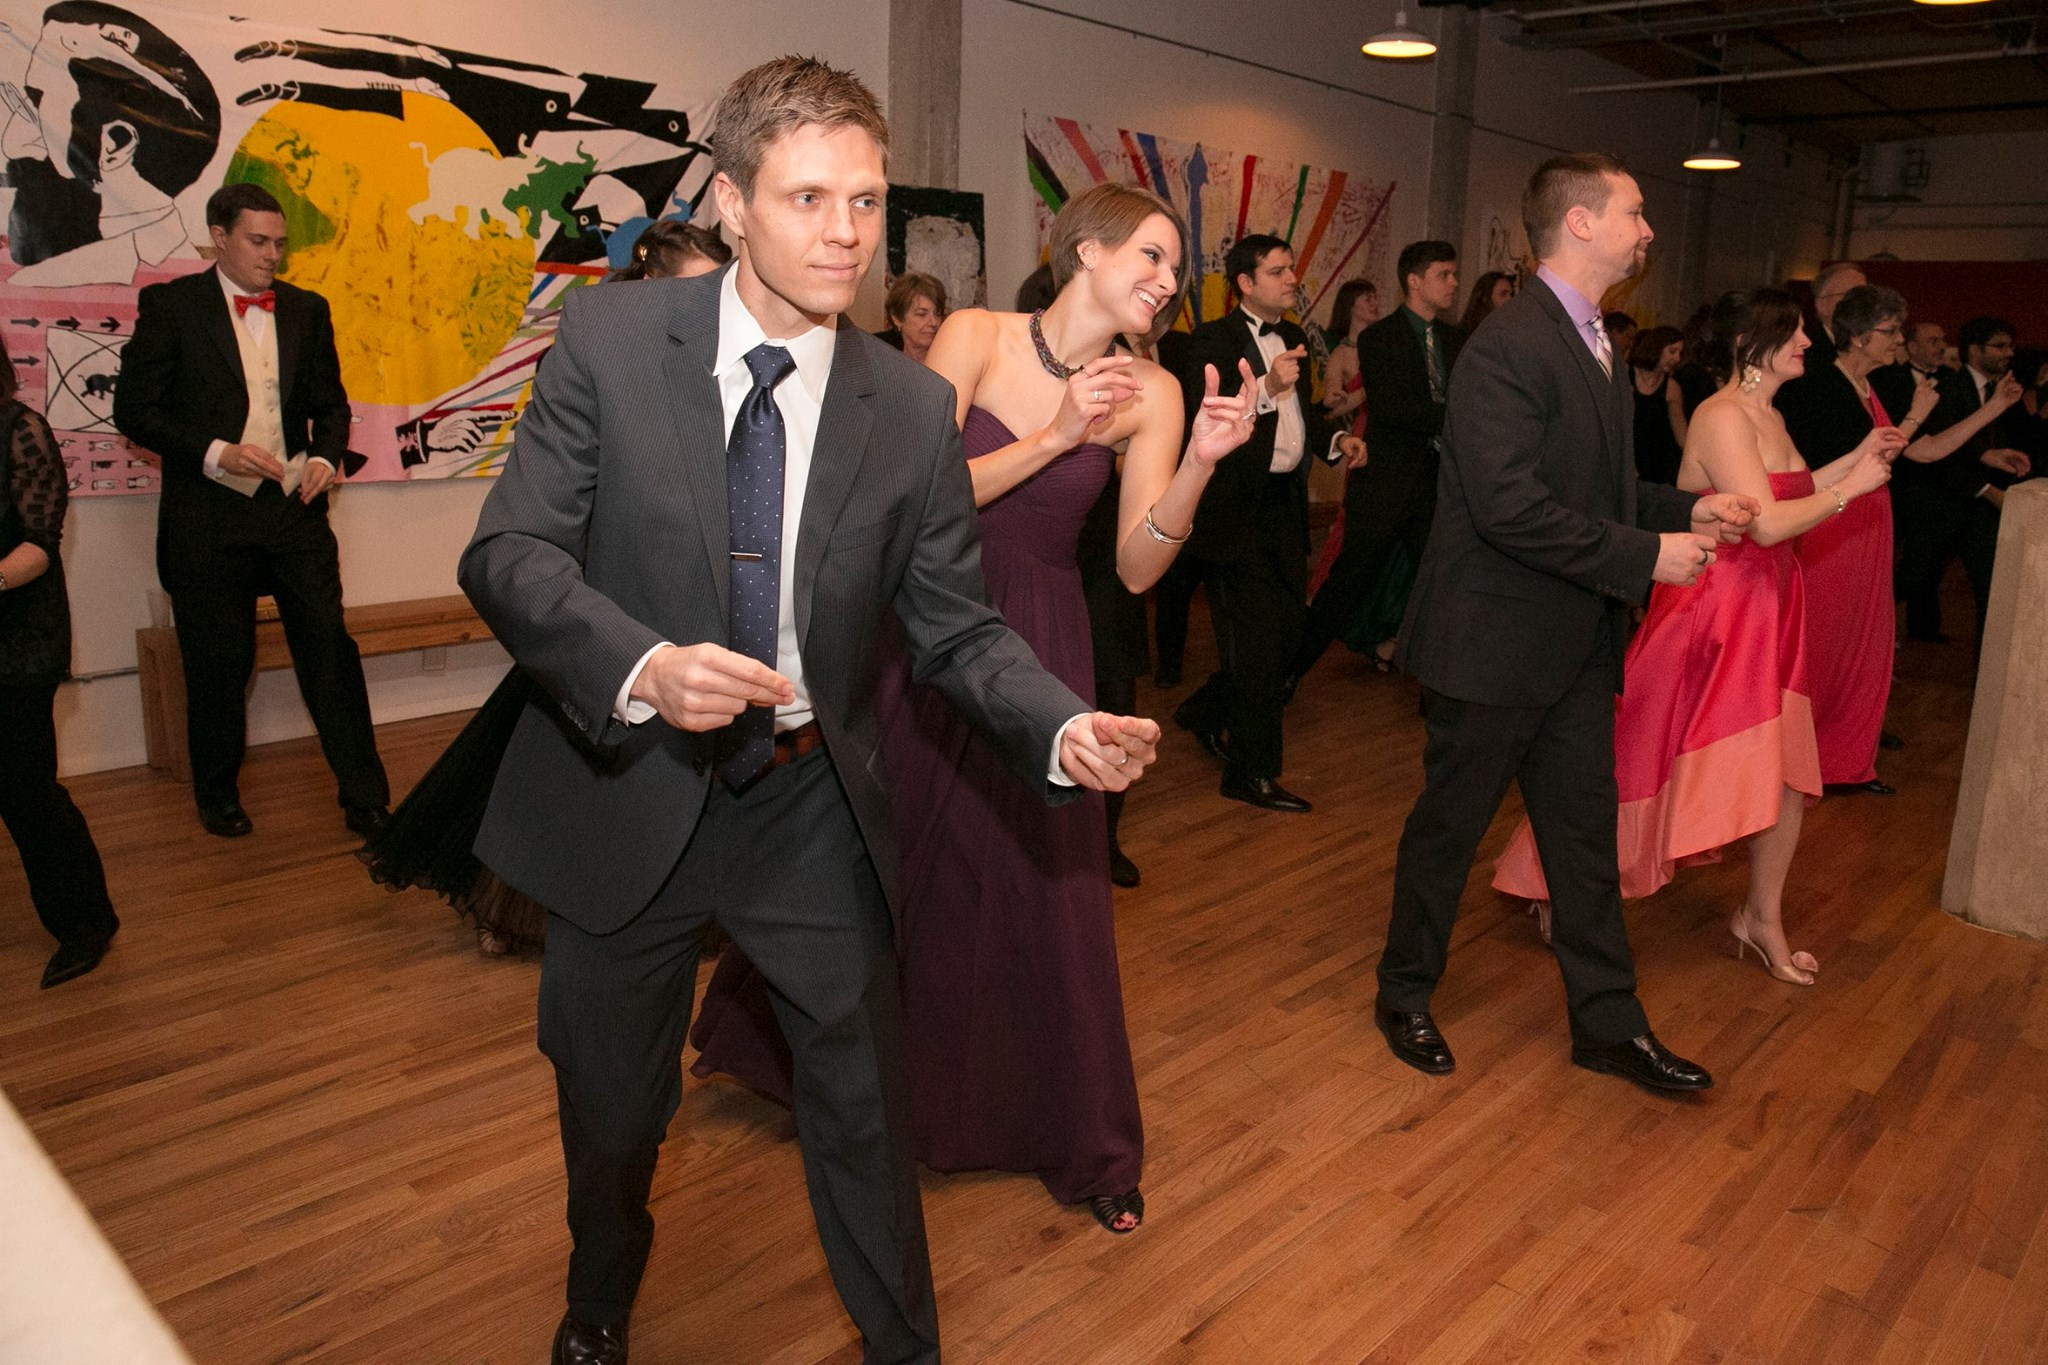 Get all of your wedding guests out on the dance floor.